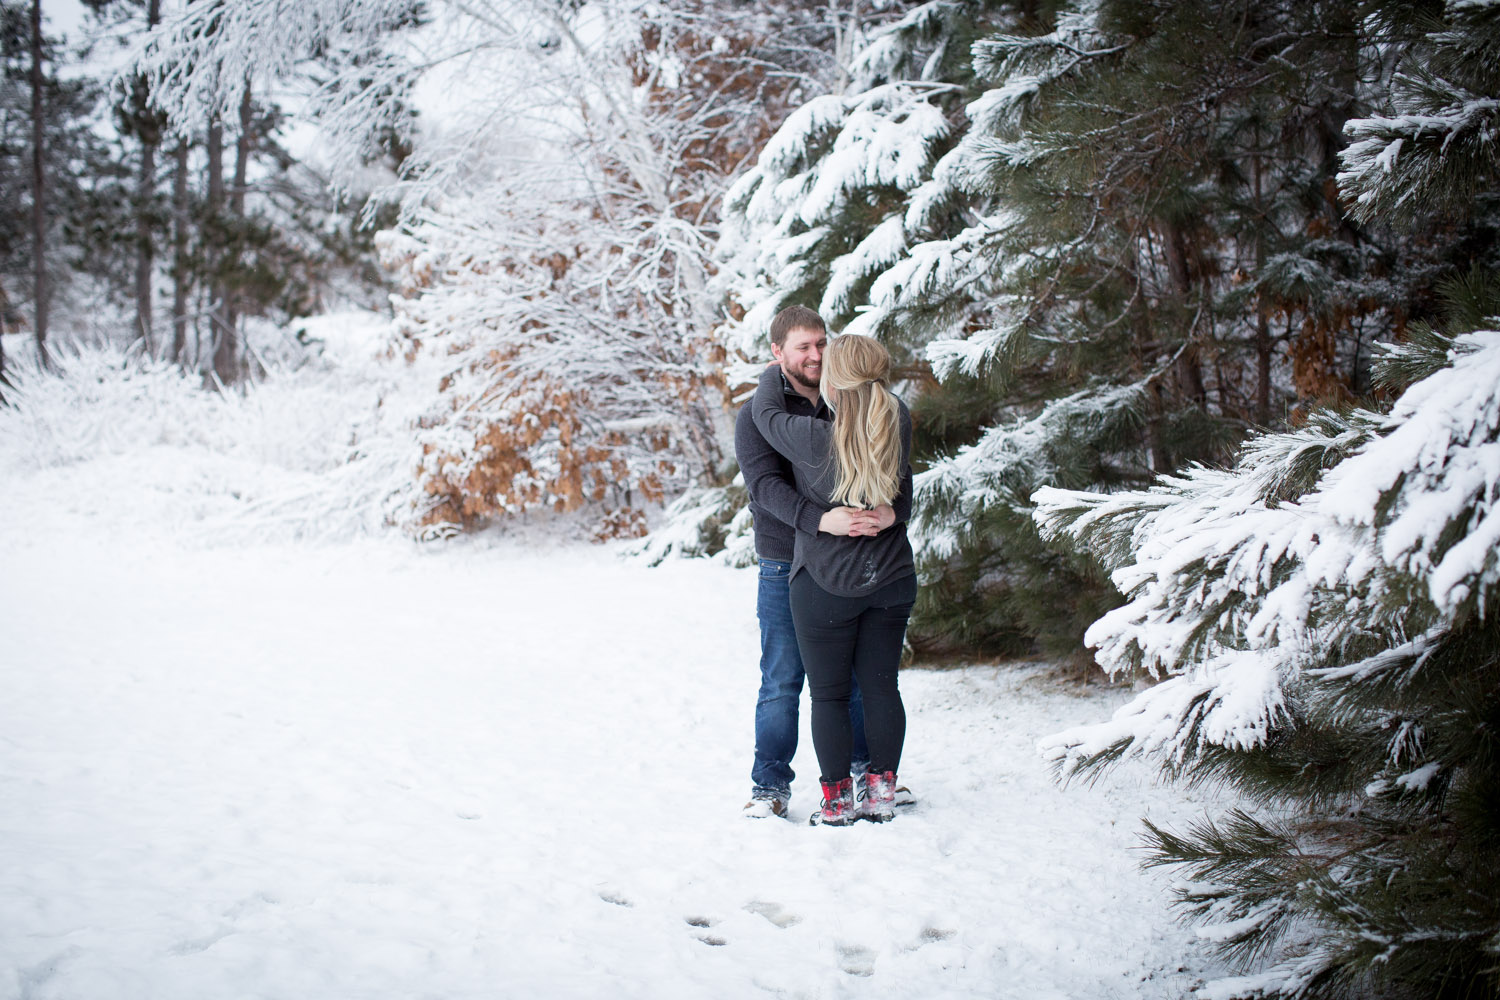 11-bunker-hill-regional-park-winter-wonderland-minnesota-engagement-photographer-snowy-day-fun-photo-session-mahonen-photography.jpg